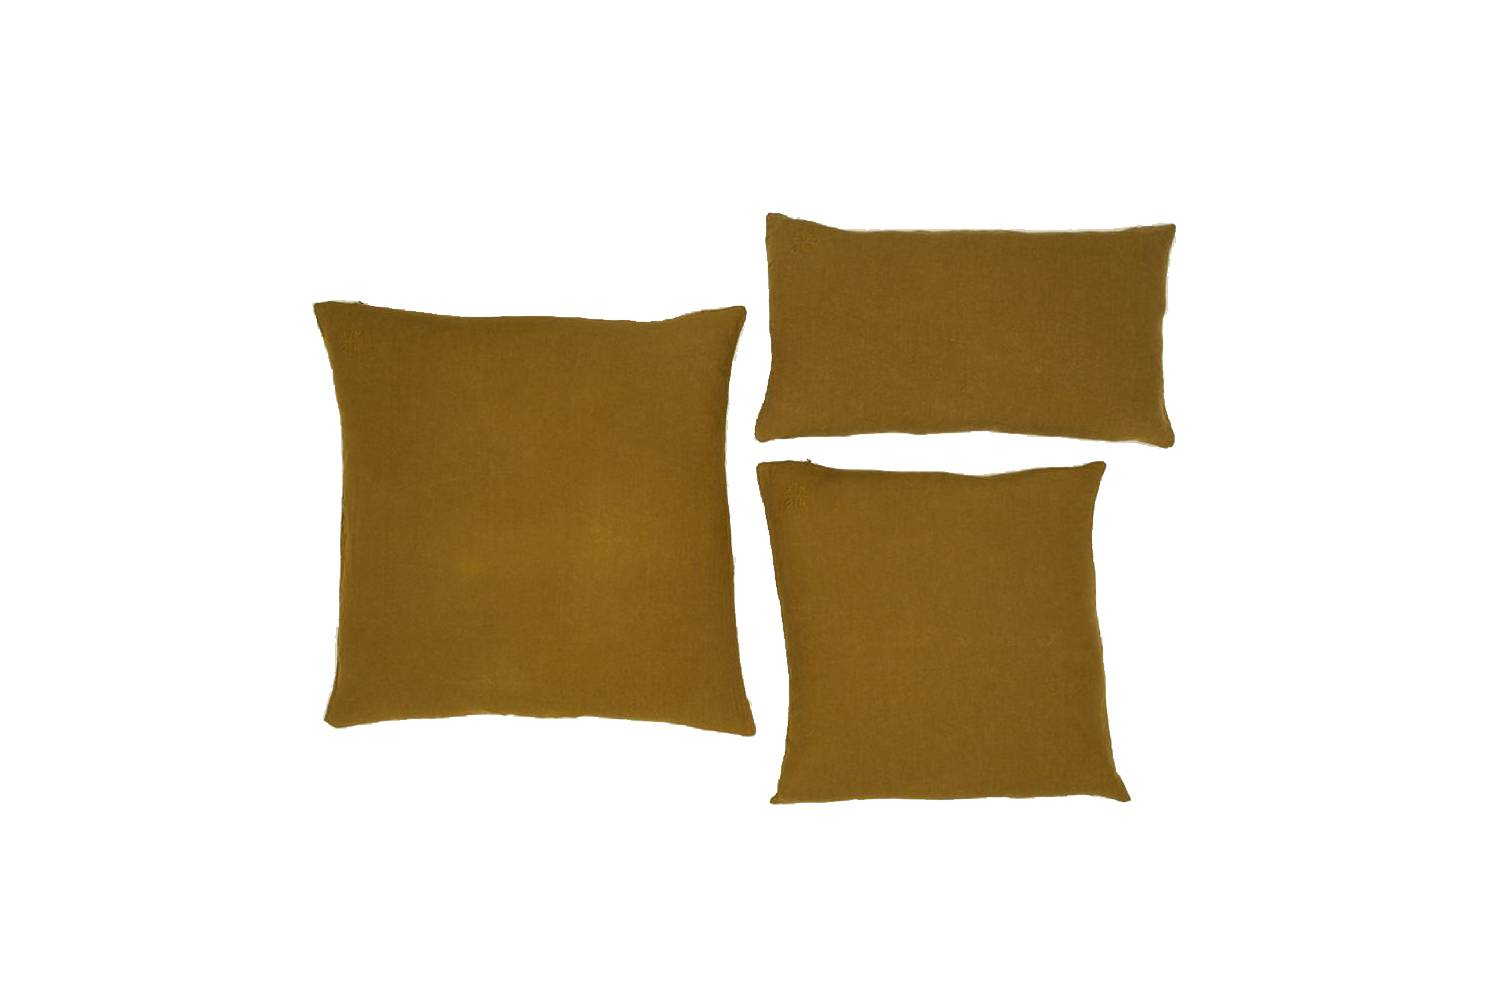 Simple Linen Pillows in Bronze are $85 at Hawkins New York.